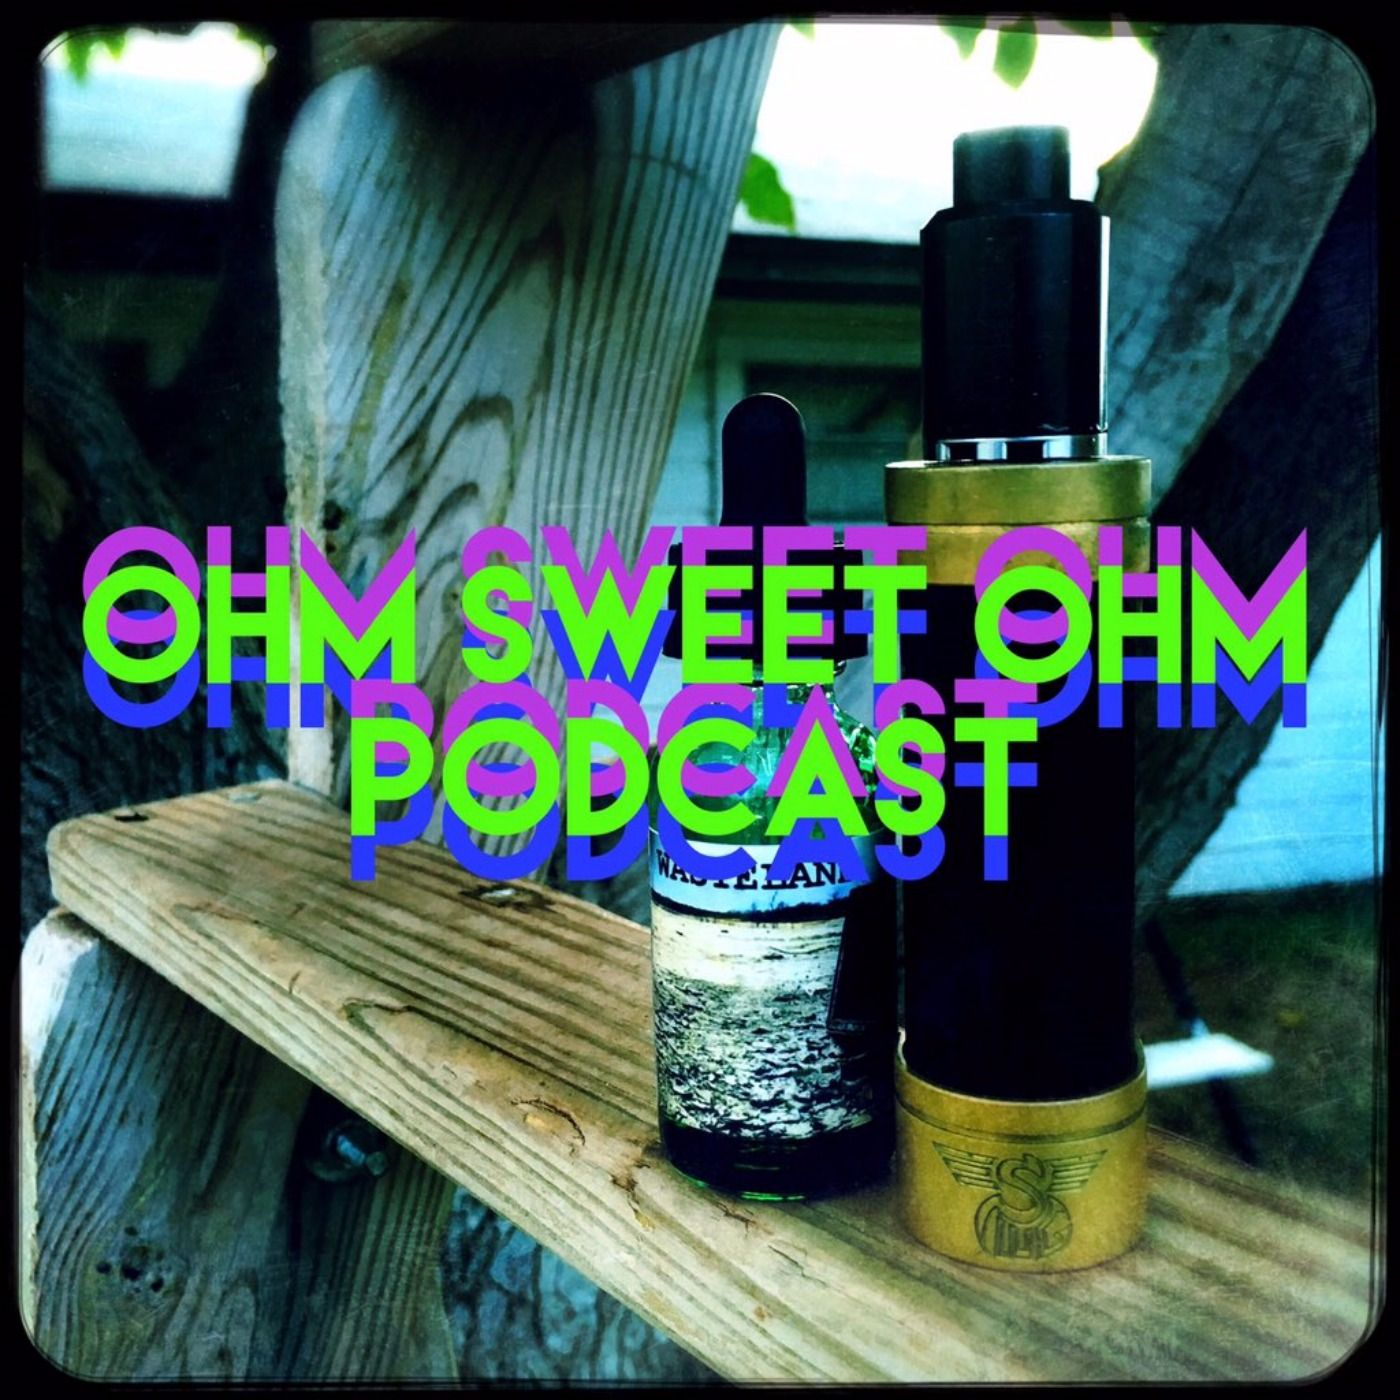 Ohm Sweet Ohm Podcast